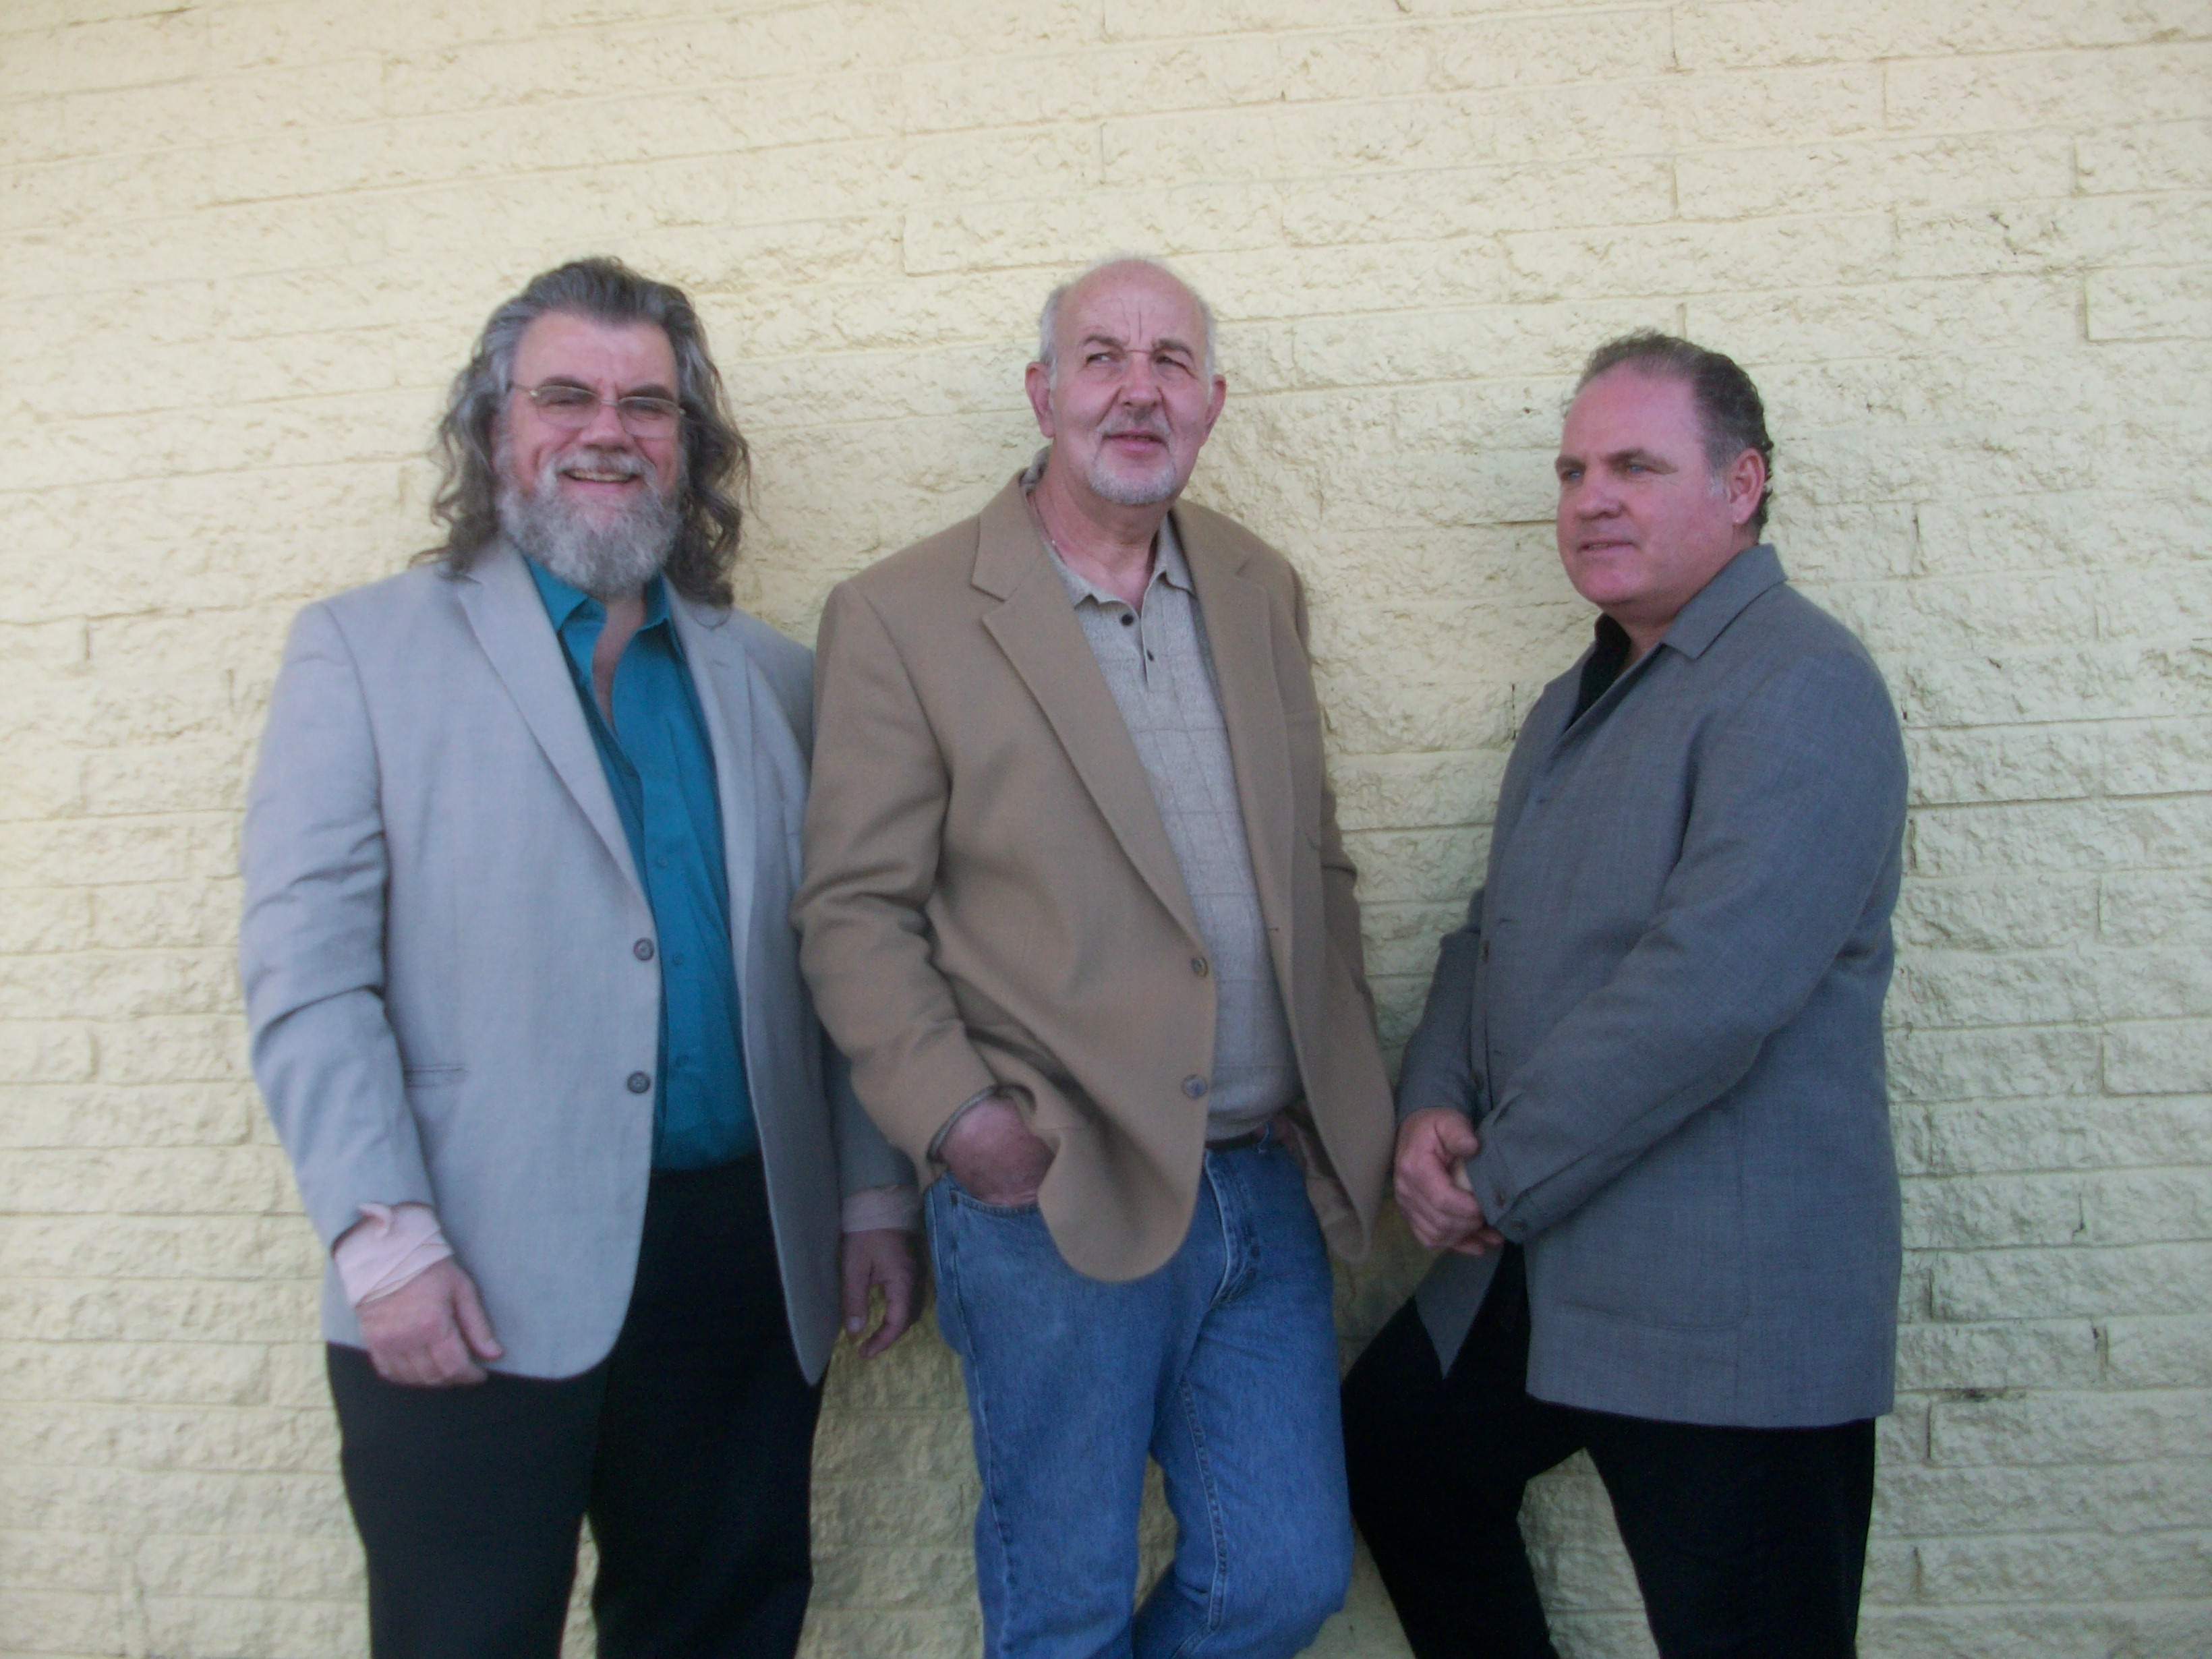 Dave schiff and spontaneous invention jazz trio